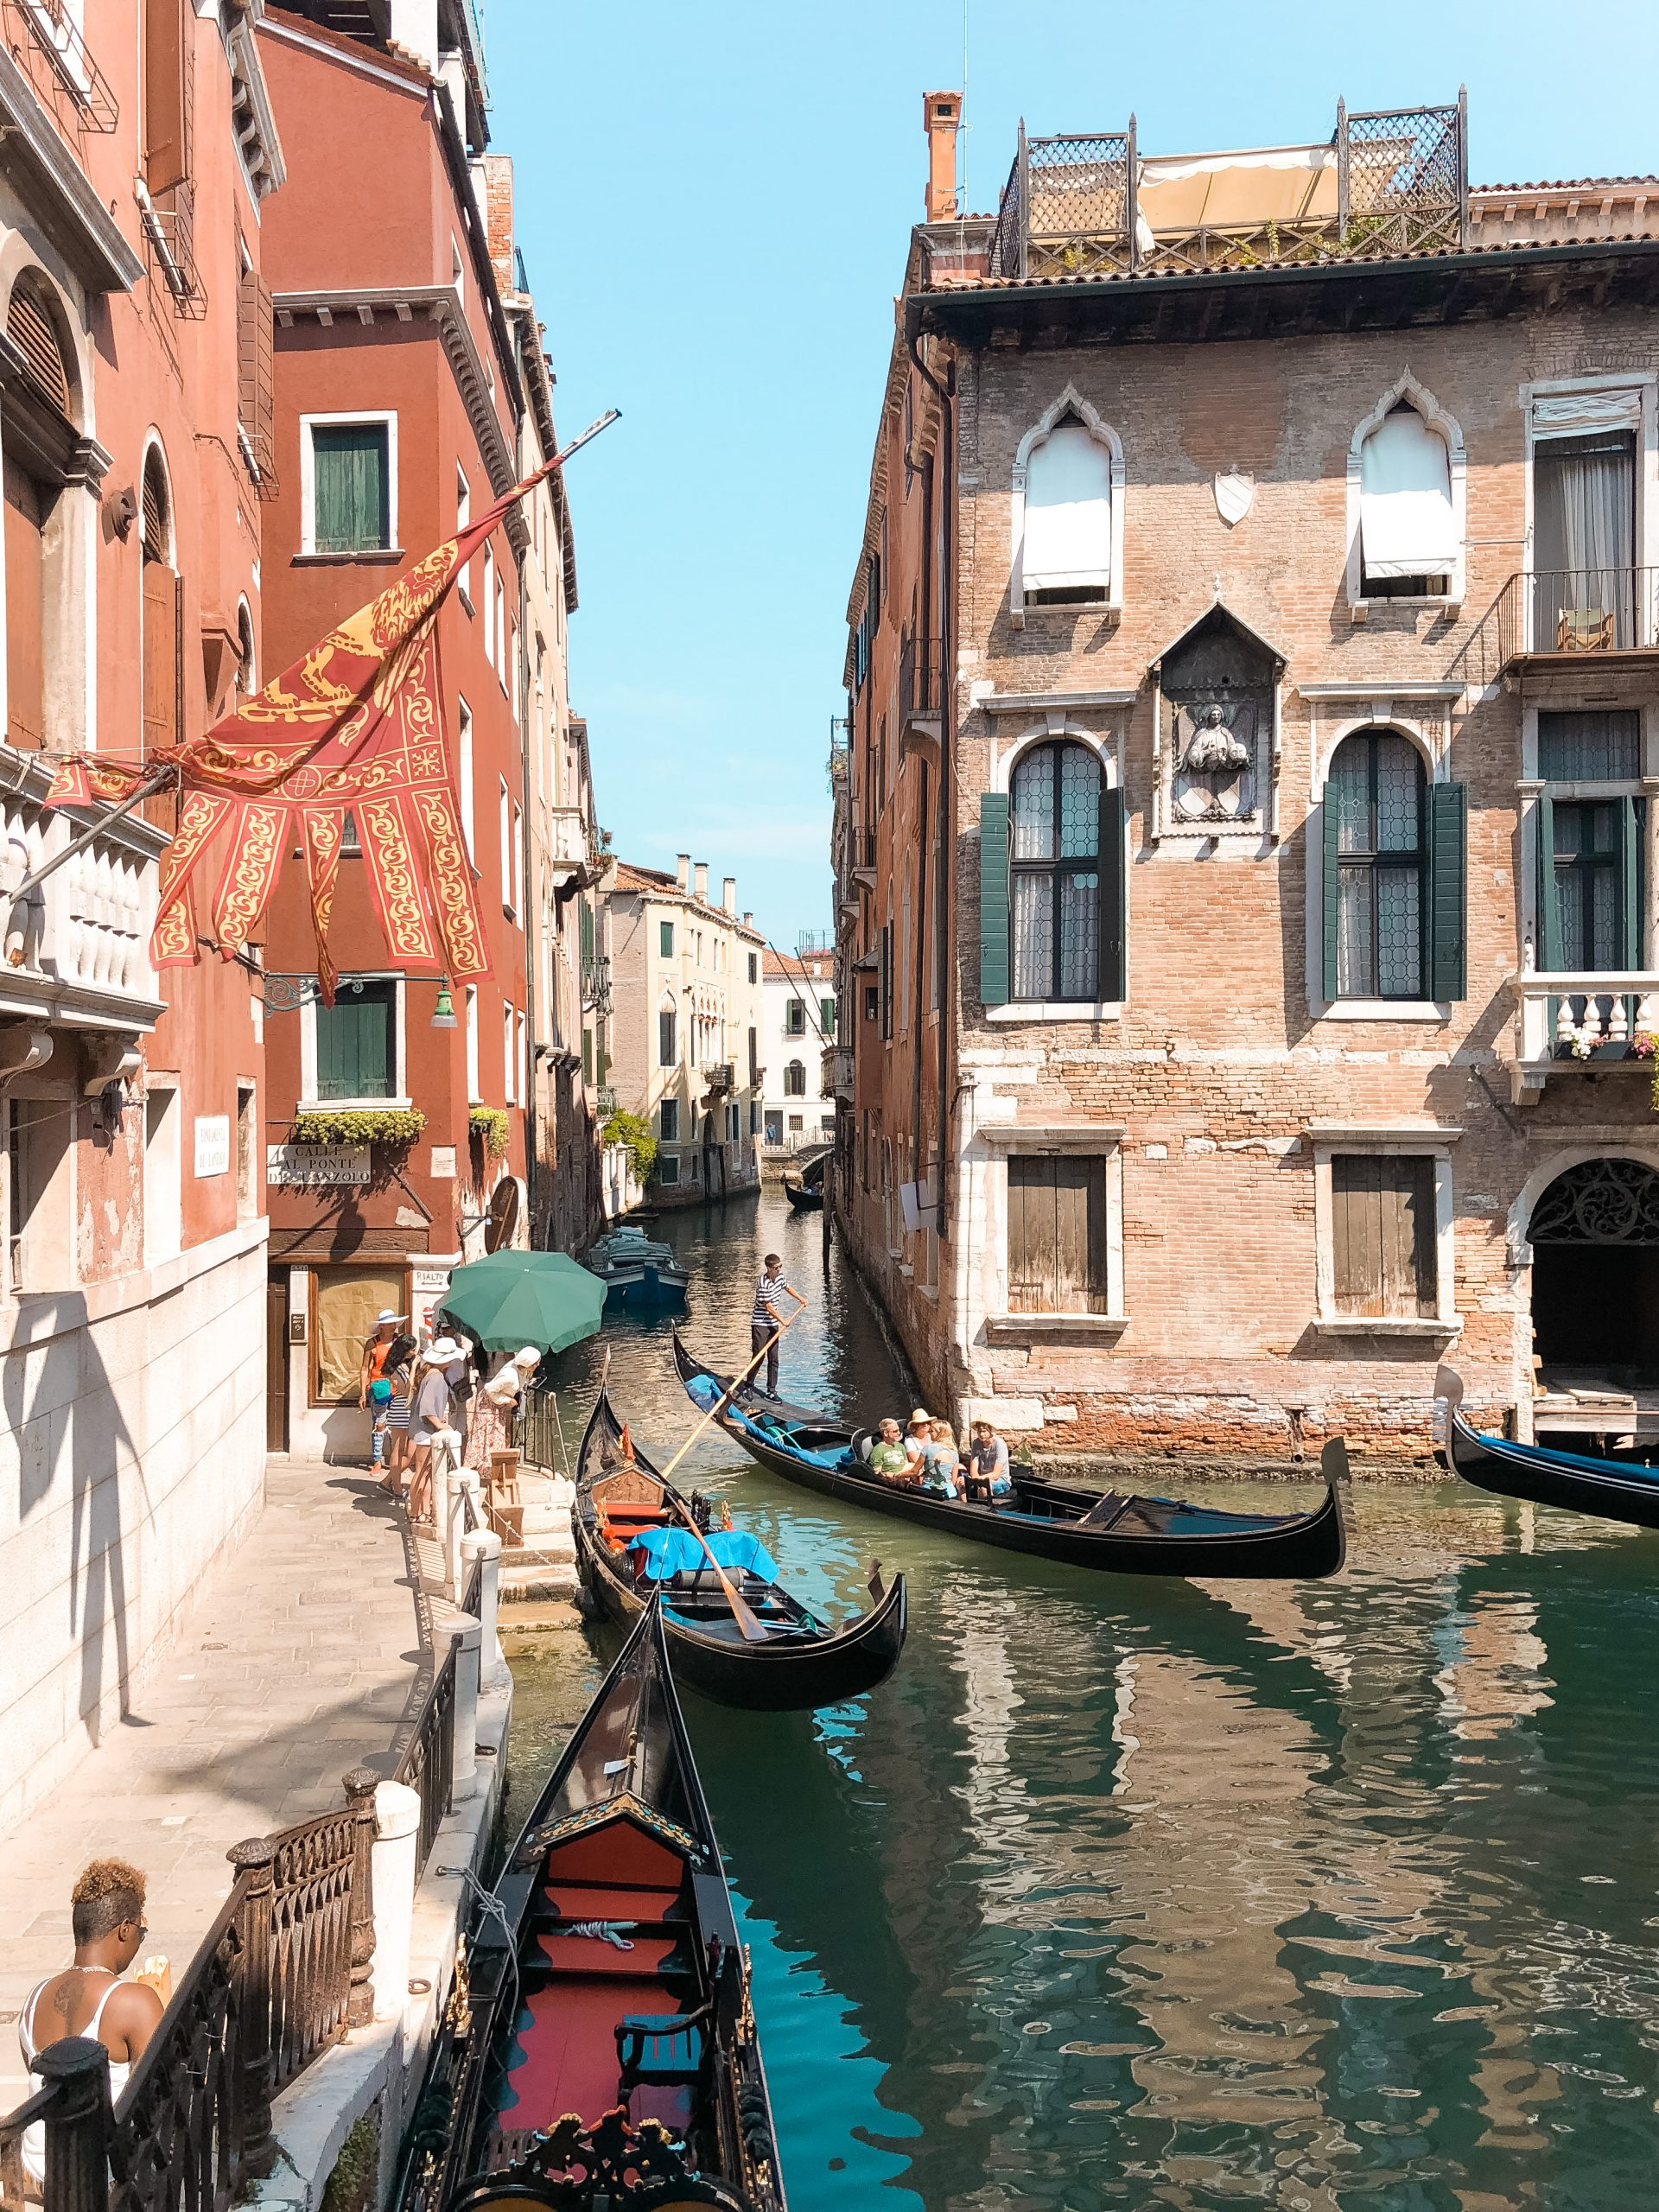 picture of large gondolas about to go through a small canal